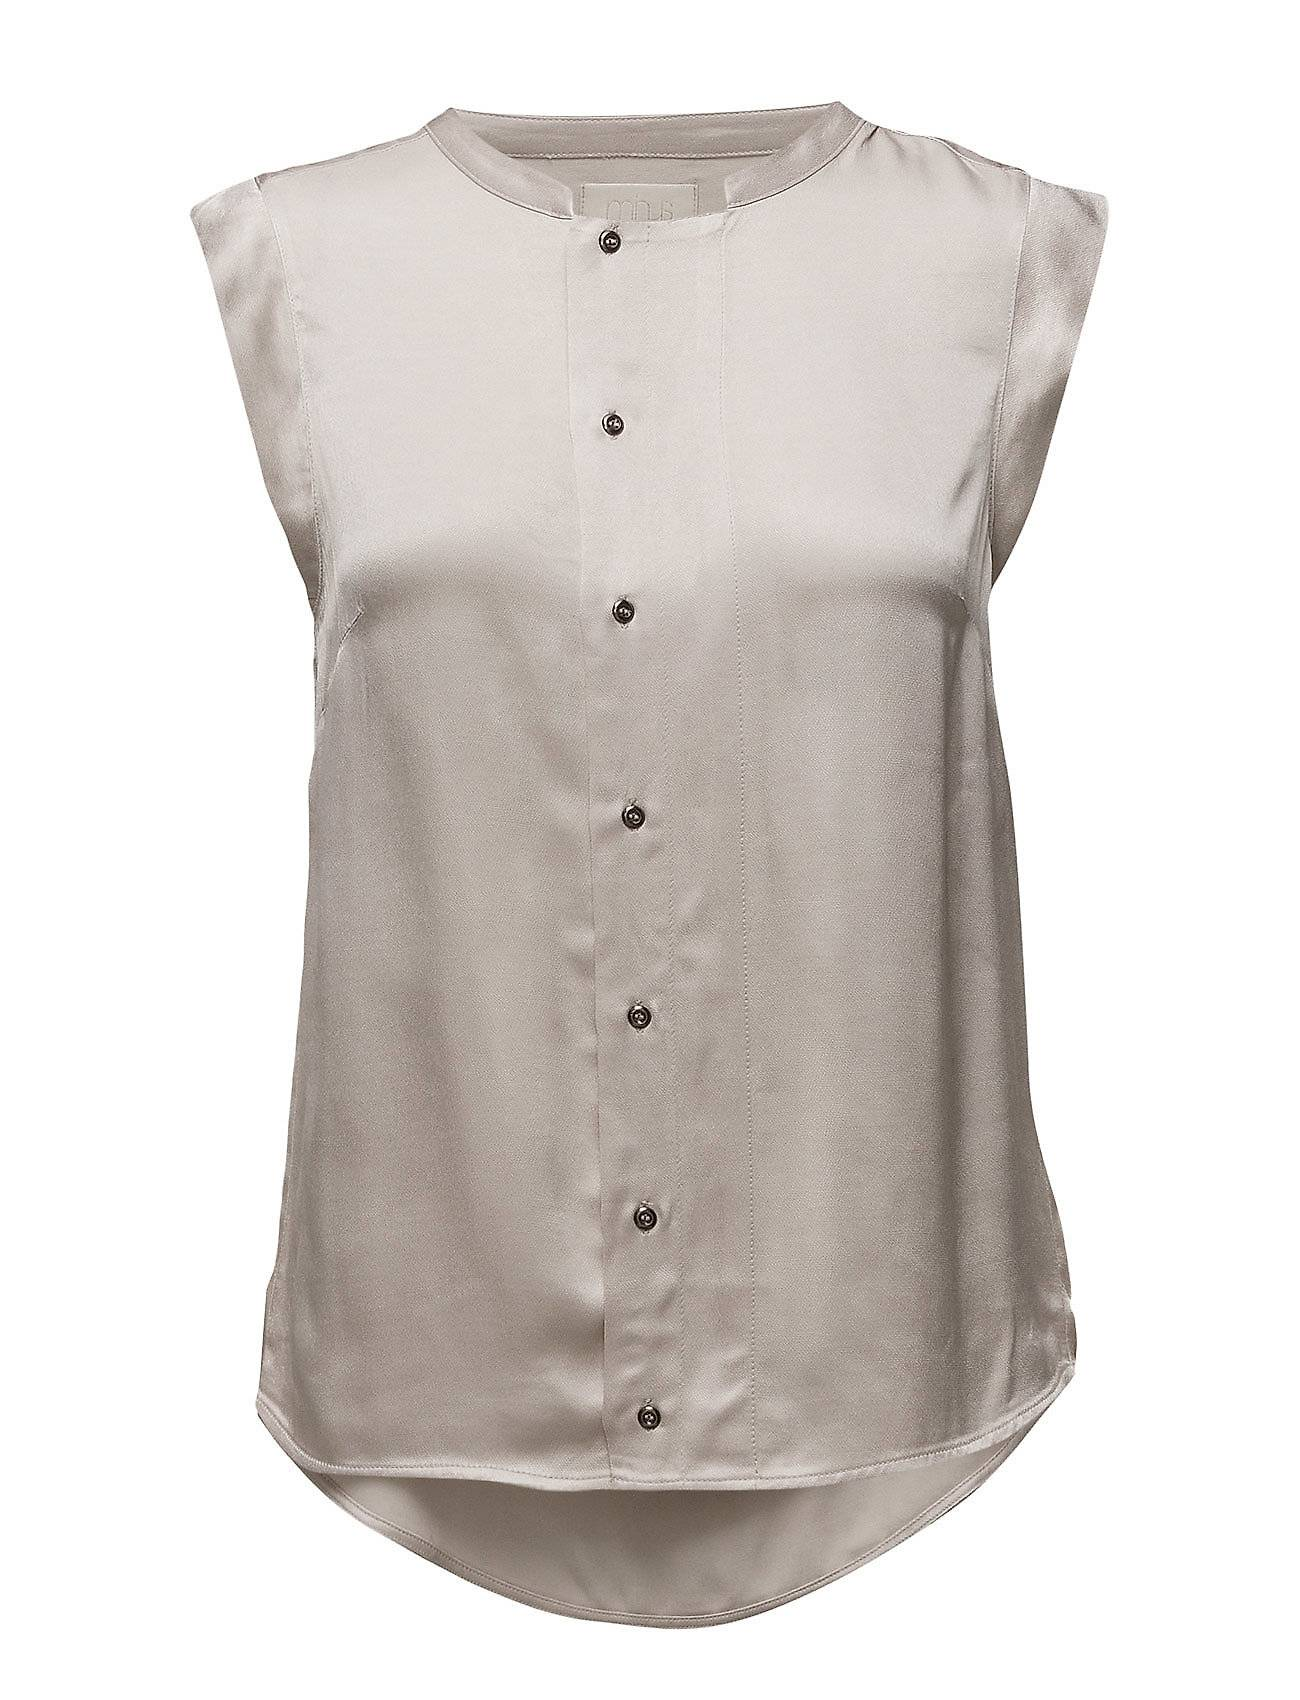 Minus Carrie Blouse